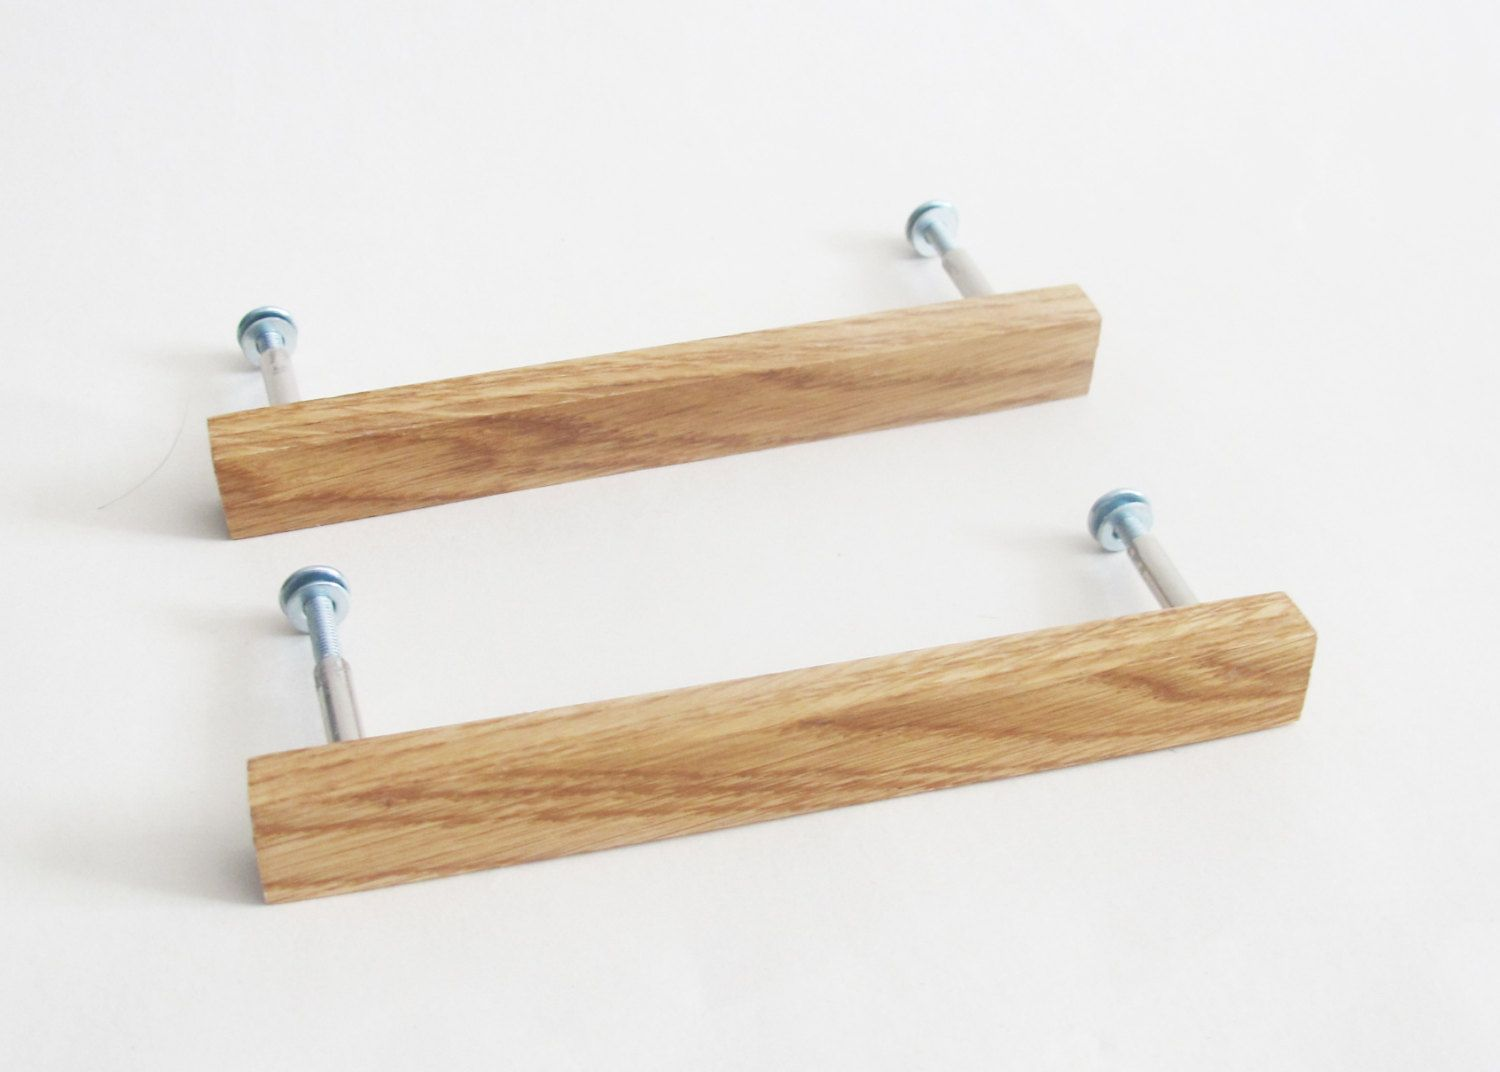 Wooden drawer pulls set of oak wood handles